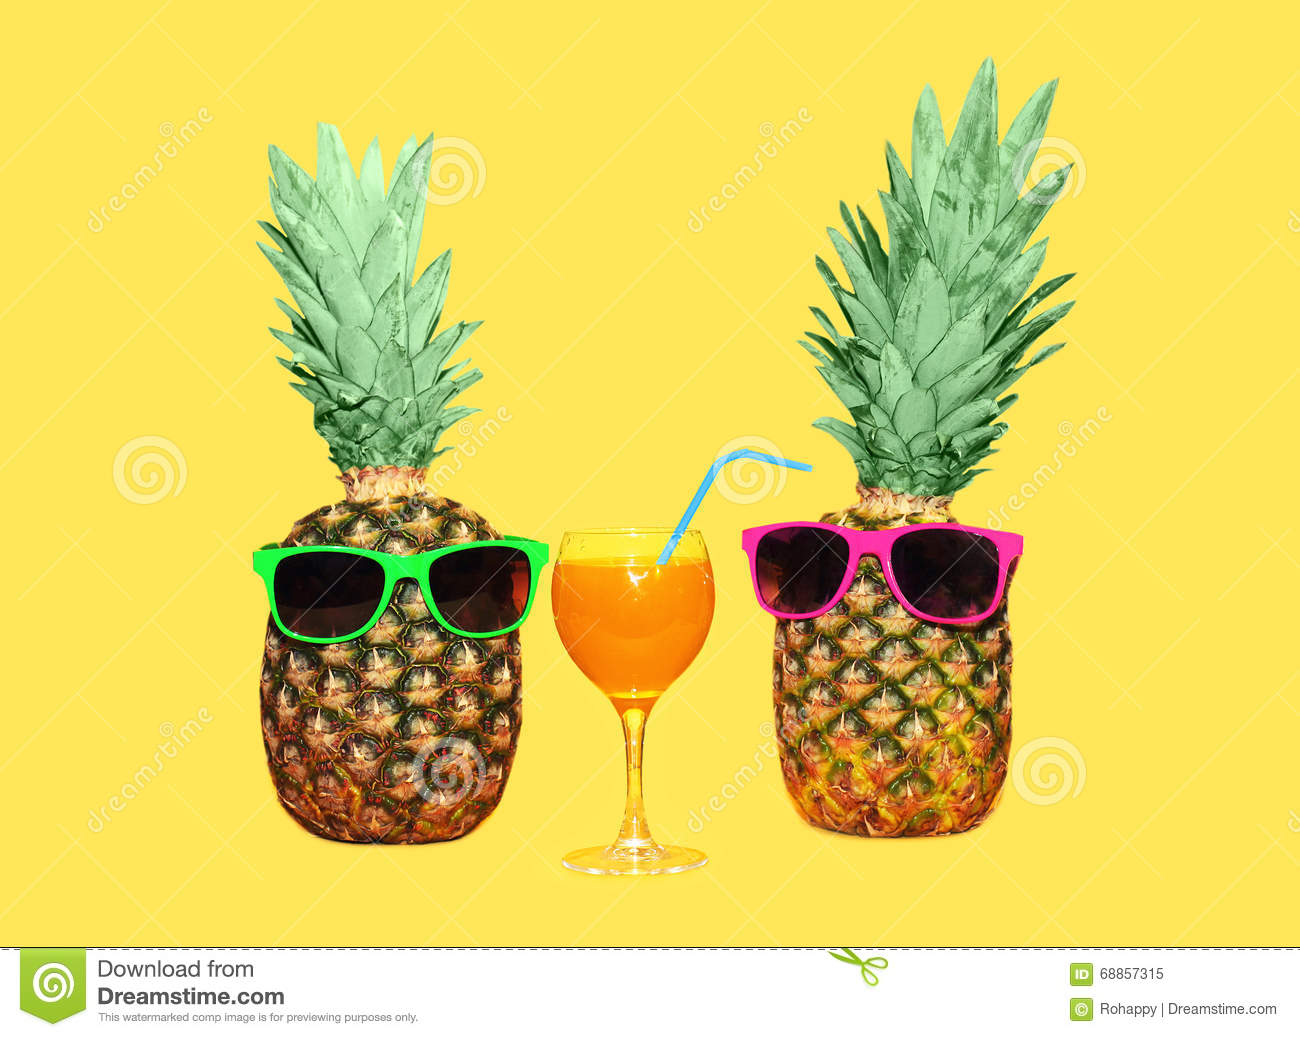 Pineapple With Sunglasses Tumblr Two Pineapple With Sunglasses And Glass Fruit Juice On